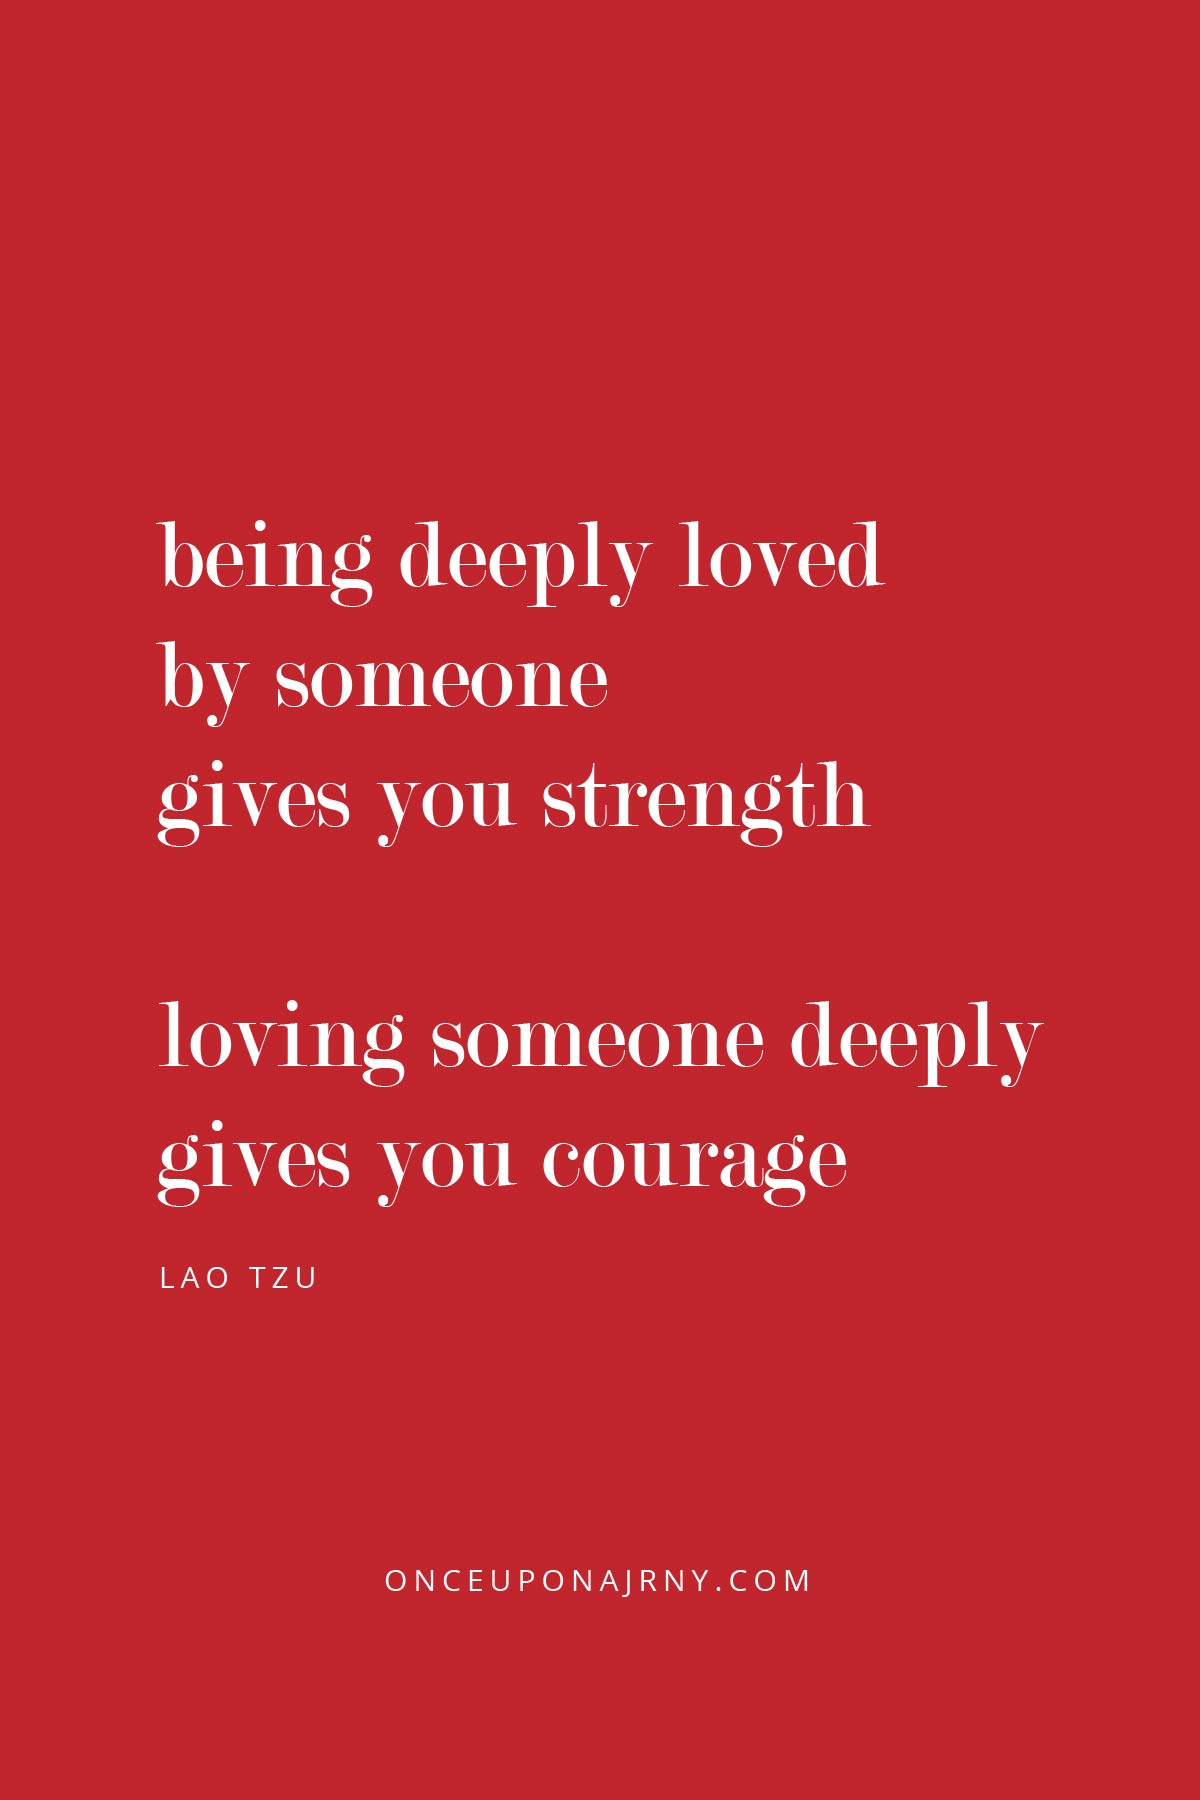 Being deeply loved by someone gives you strength, while loving someone deeply gives you courage. - Lao Tzu love is love quotes